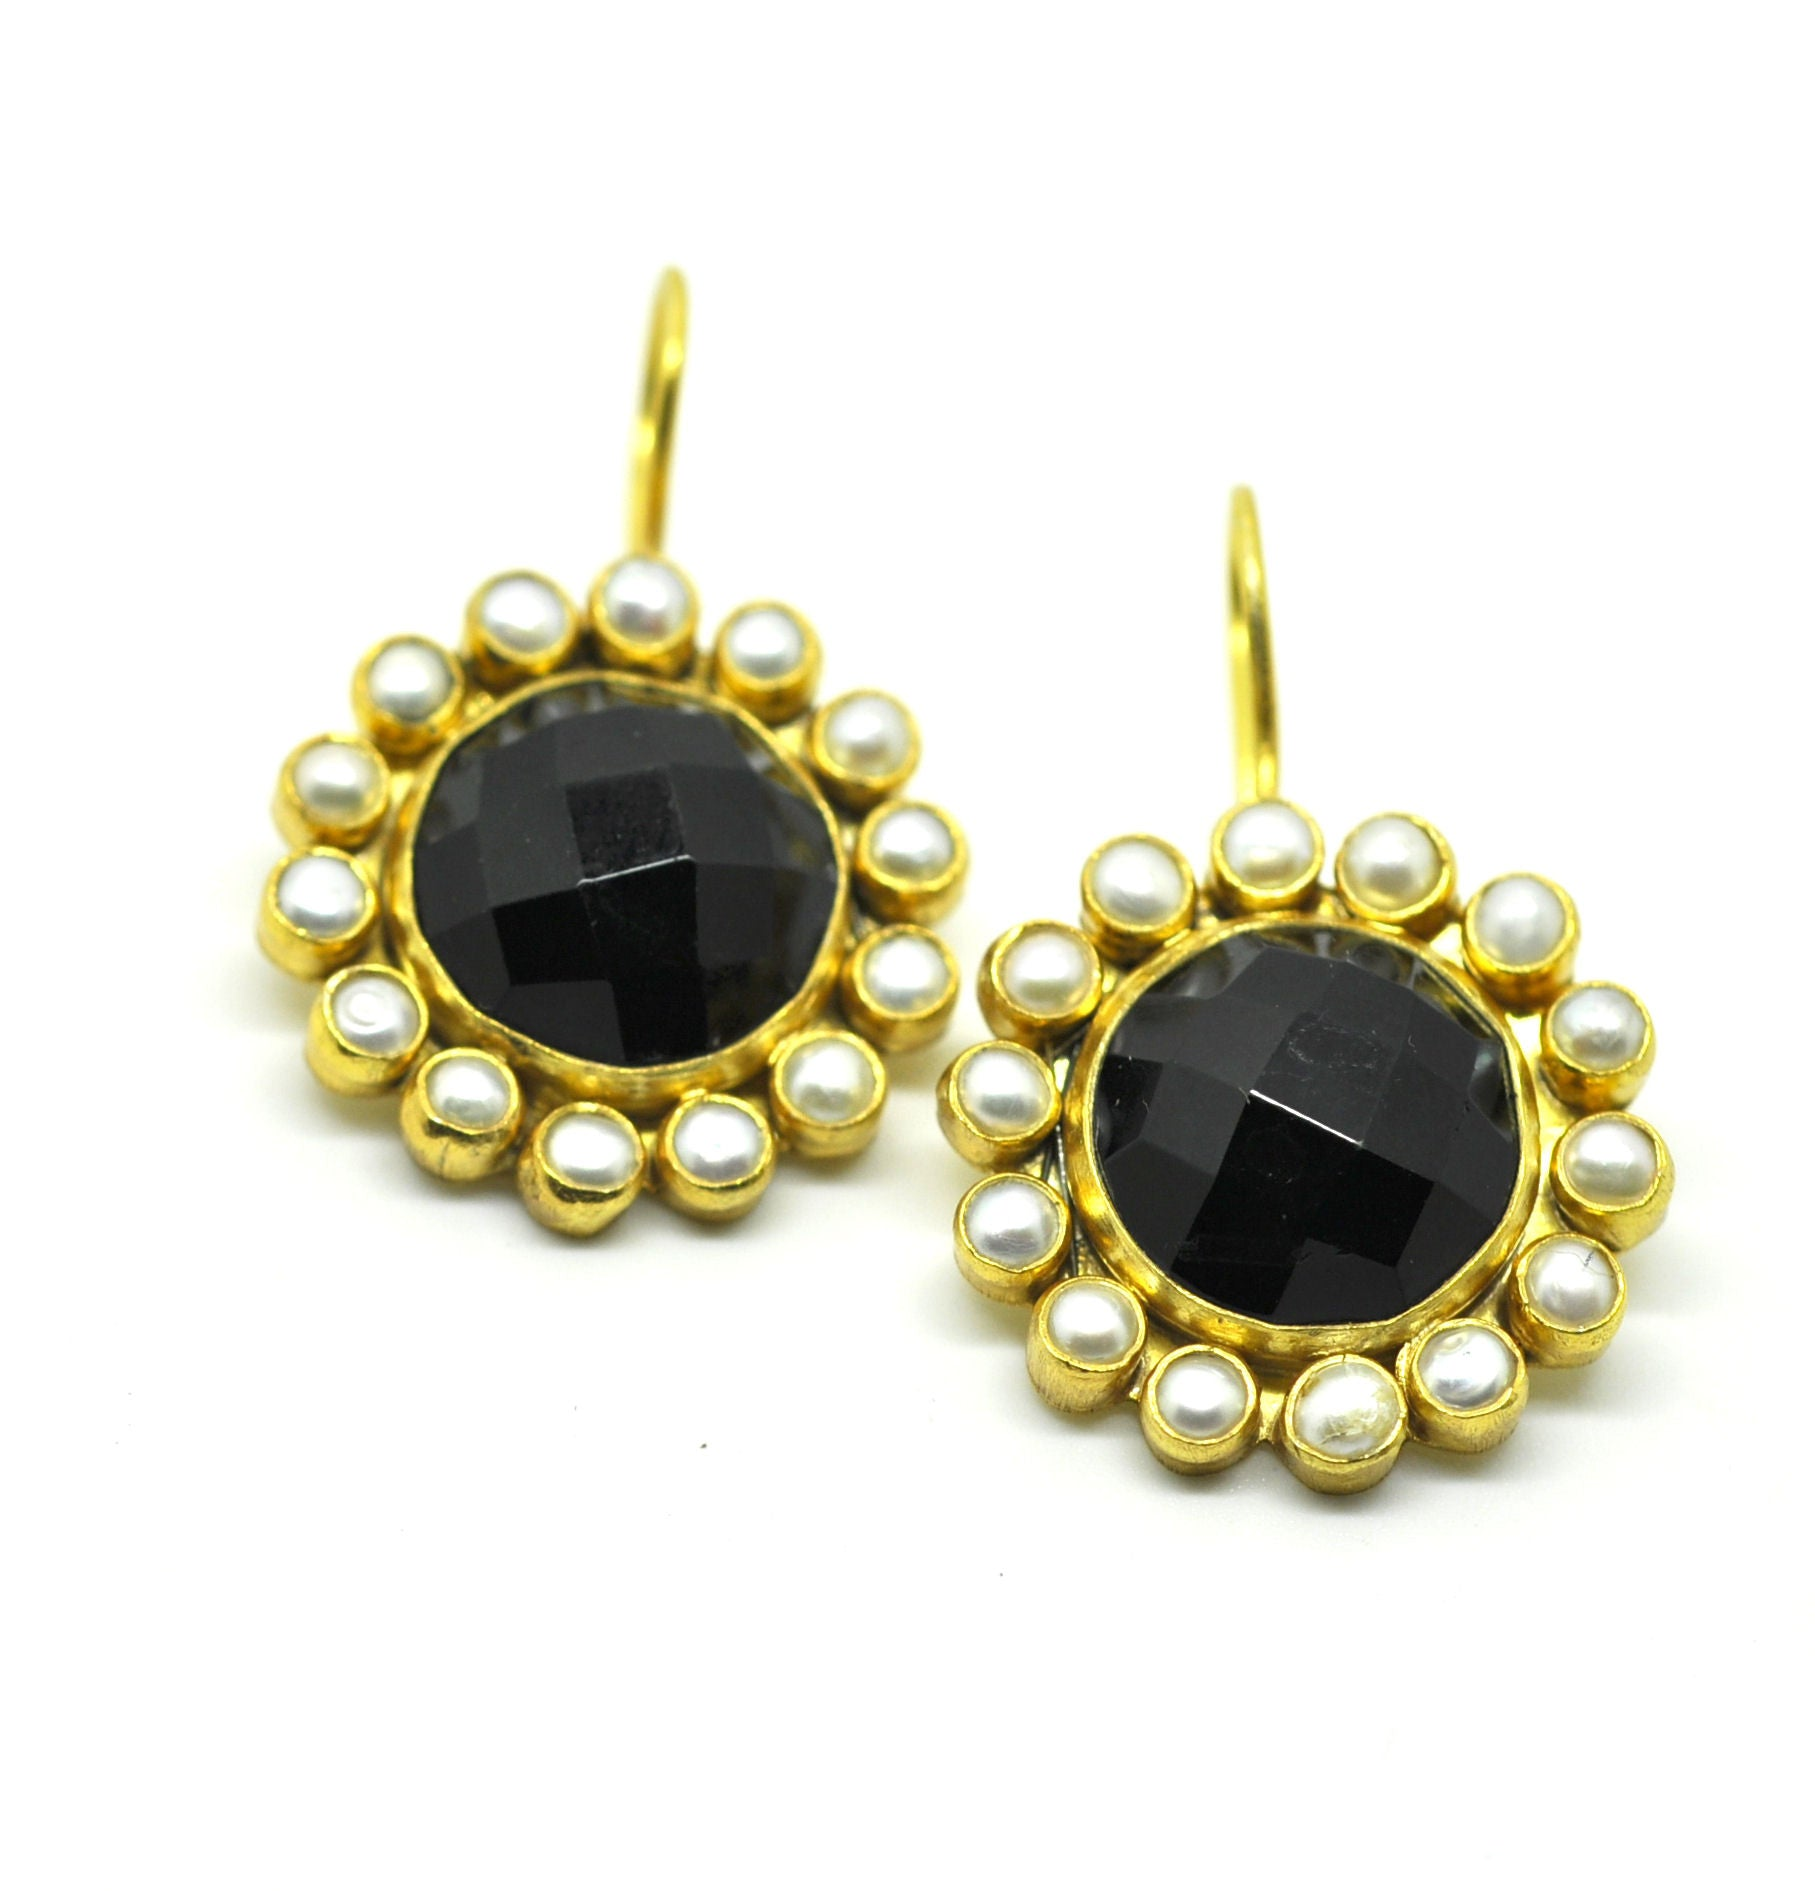 SOLD - ON SALE - Small pearl and Black onyx earring